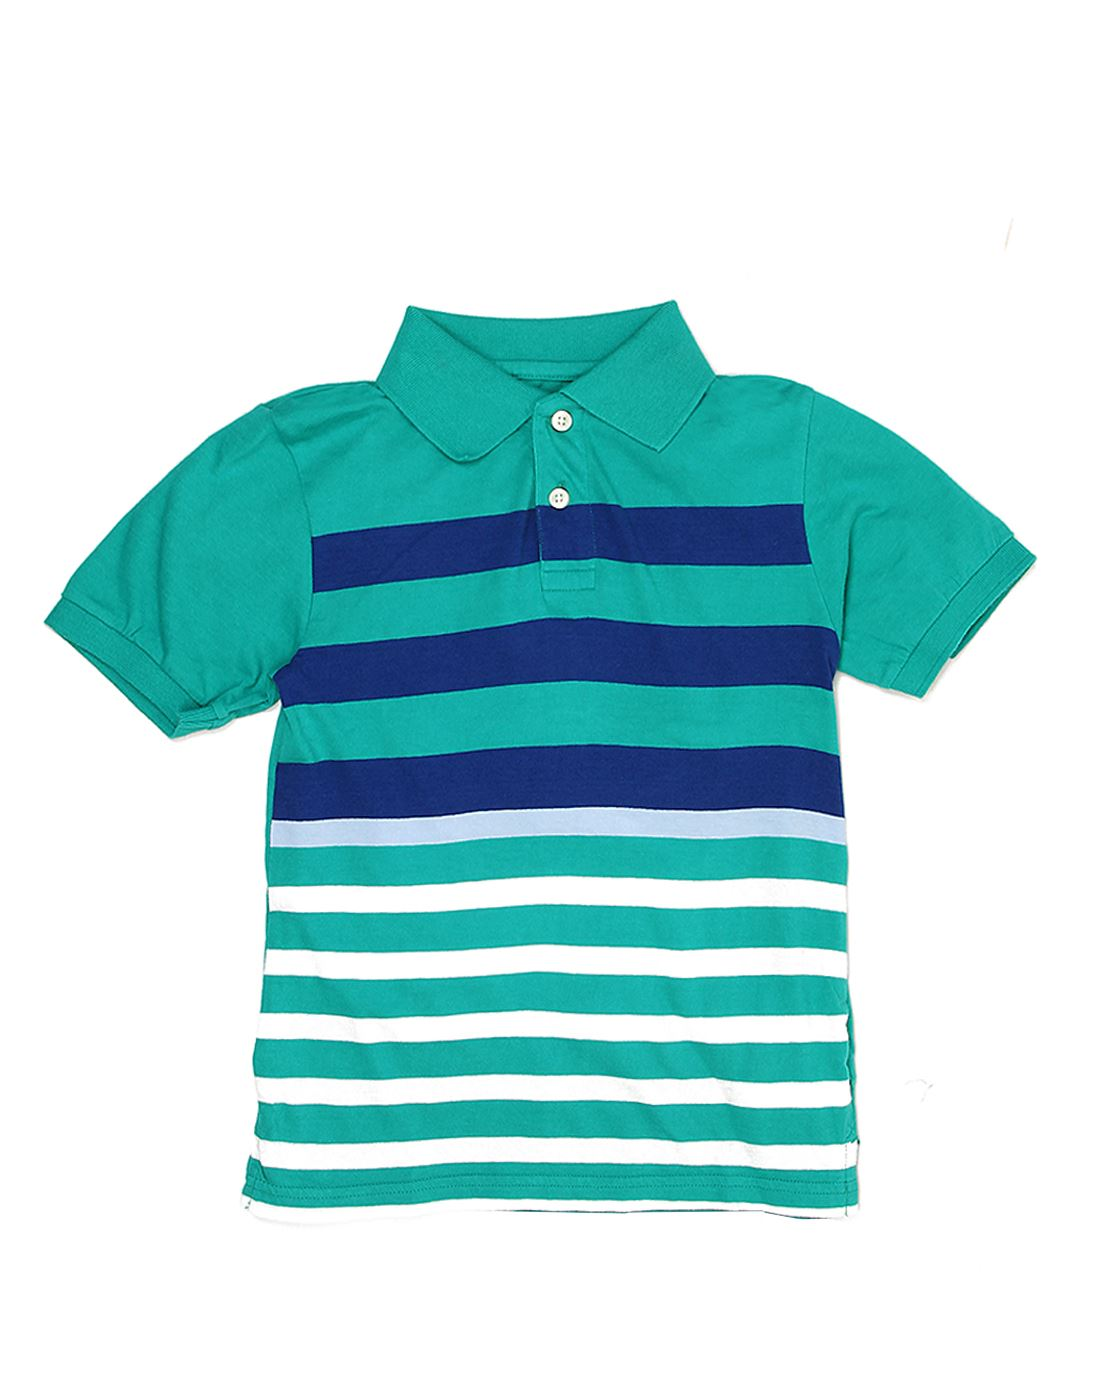 The Children's Place Boys Casual Wear Striped Polo T-Shirt